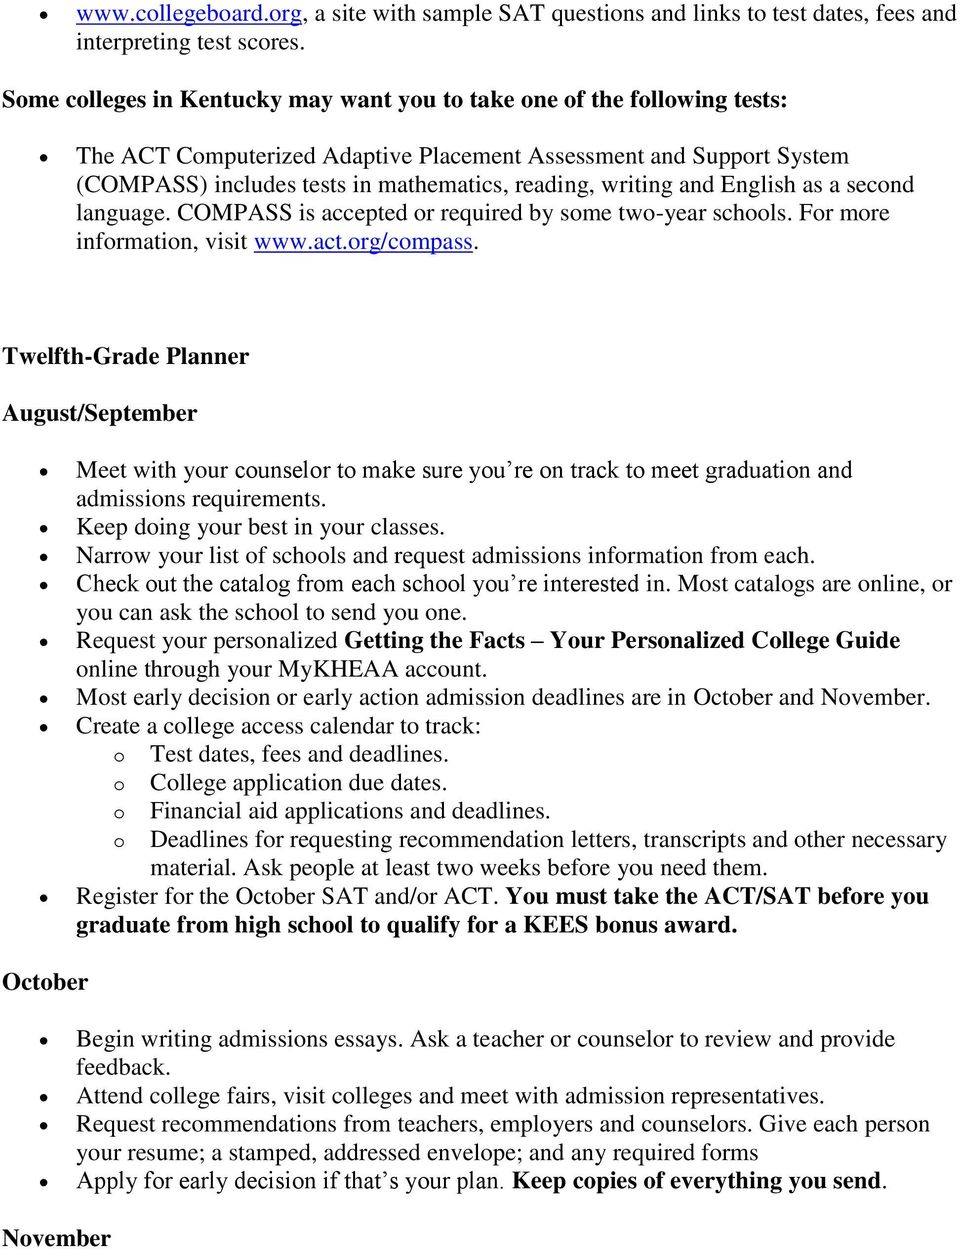 writing and English as a second language. COMPASS is accepted or required by some two-year schools. For more information, visit www.act.org/compass.